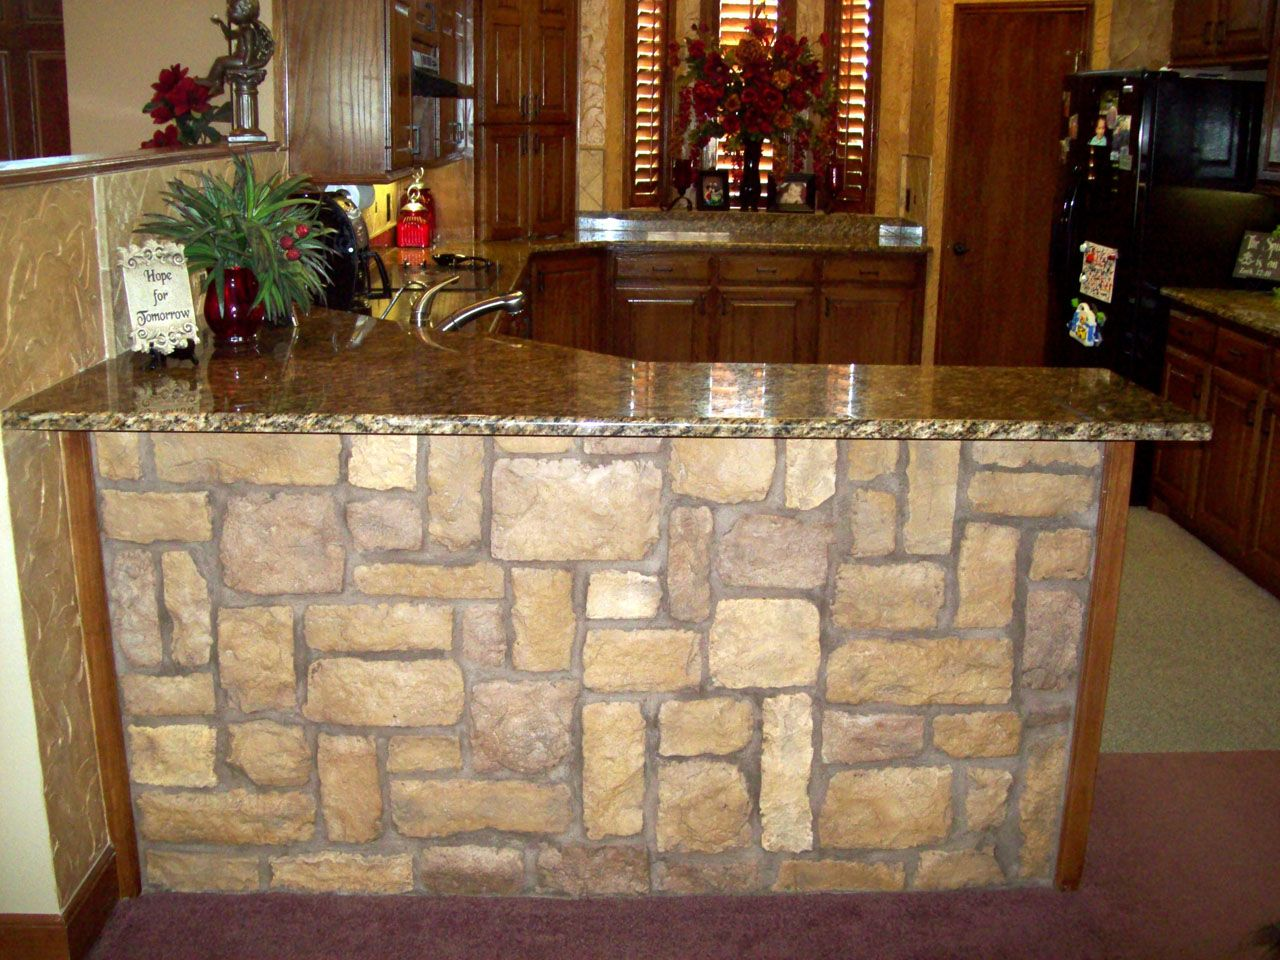 Mobile Home Kitchen Remodel With Stone | kitchen | Pinterest ...